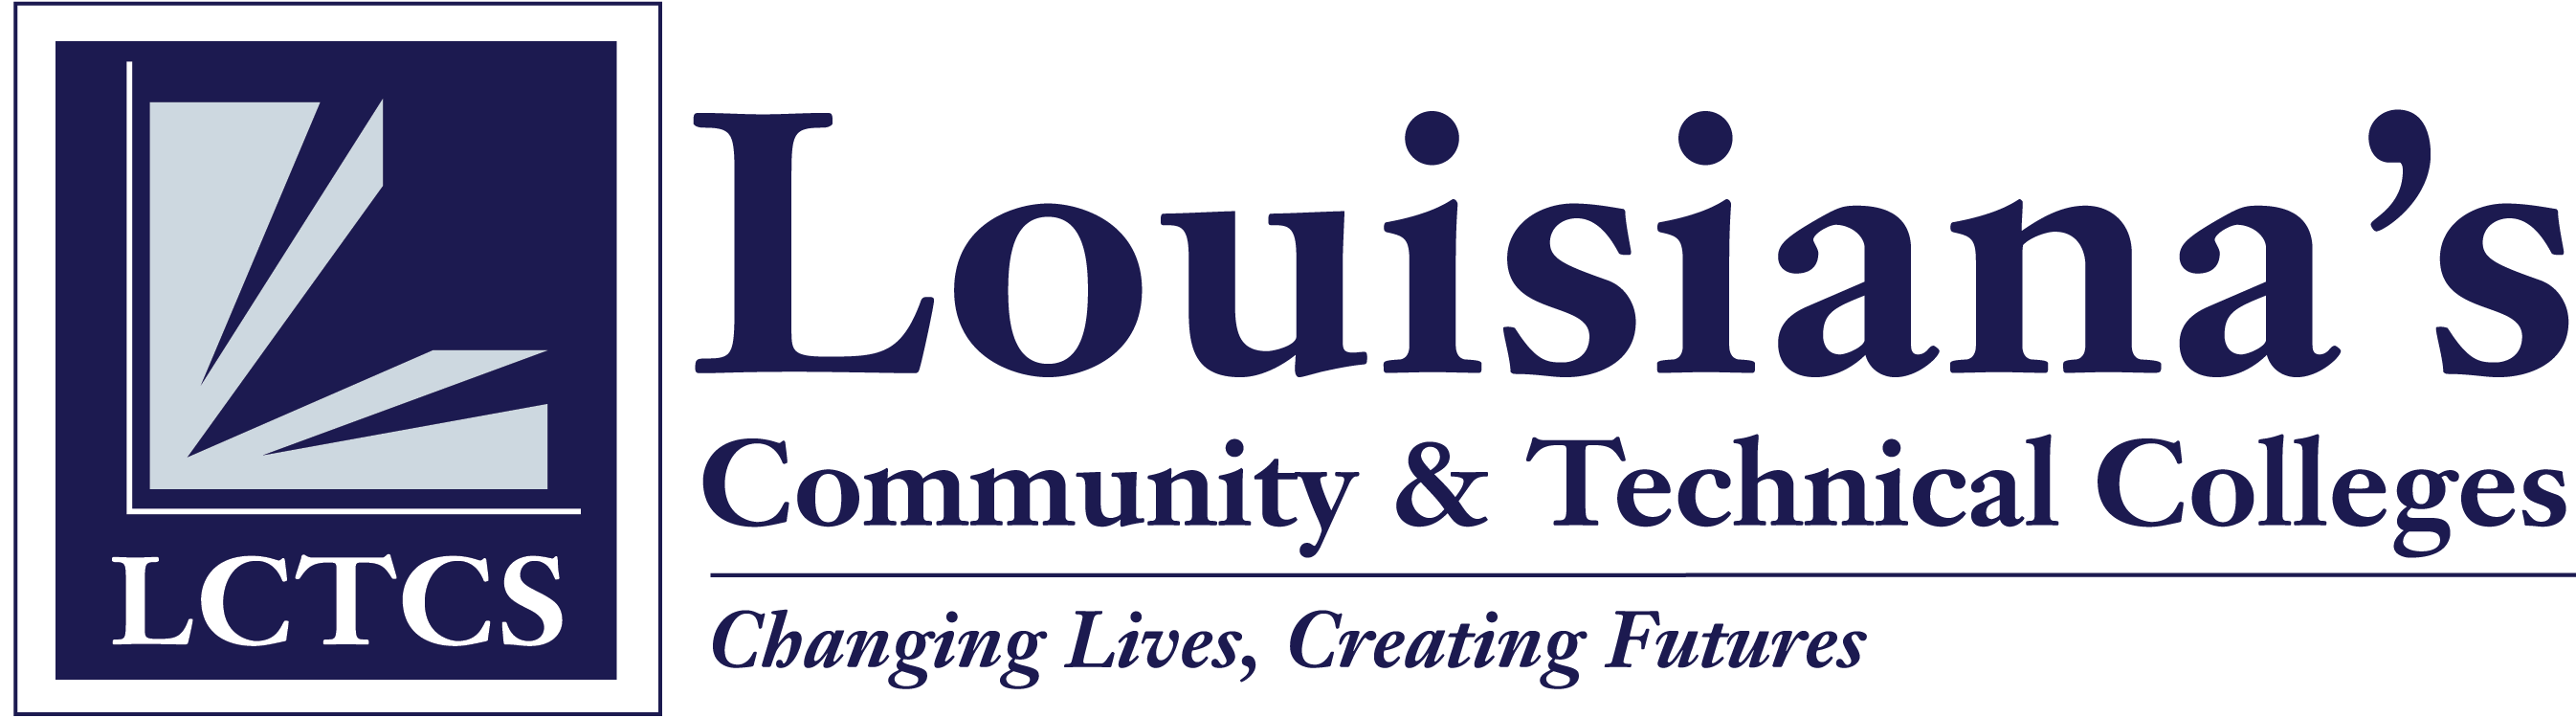 Lousiana's Community & Technical Colleges02